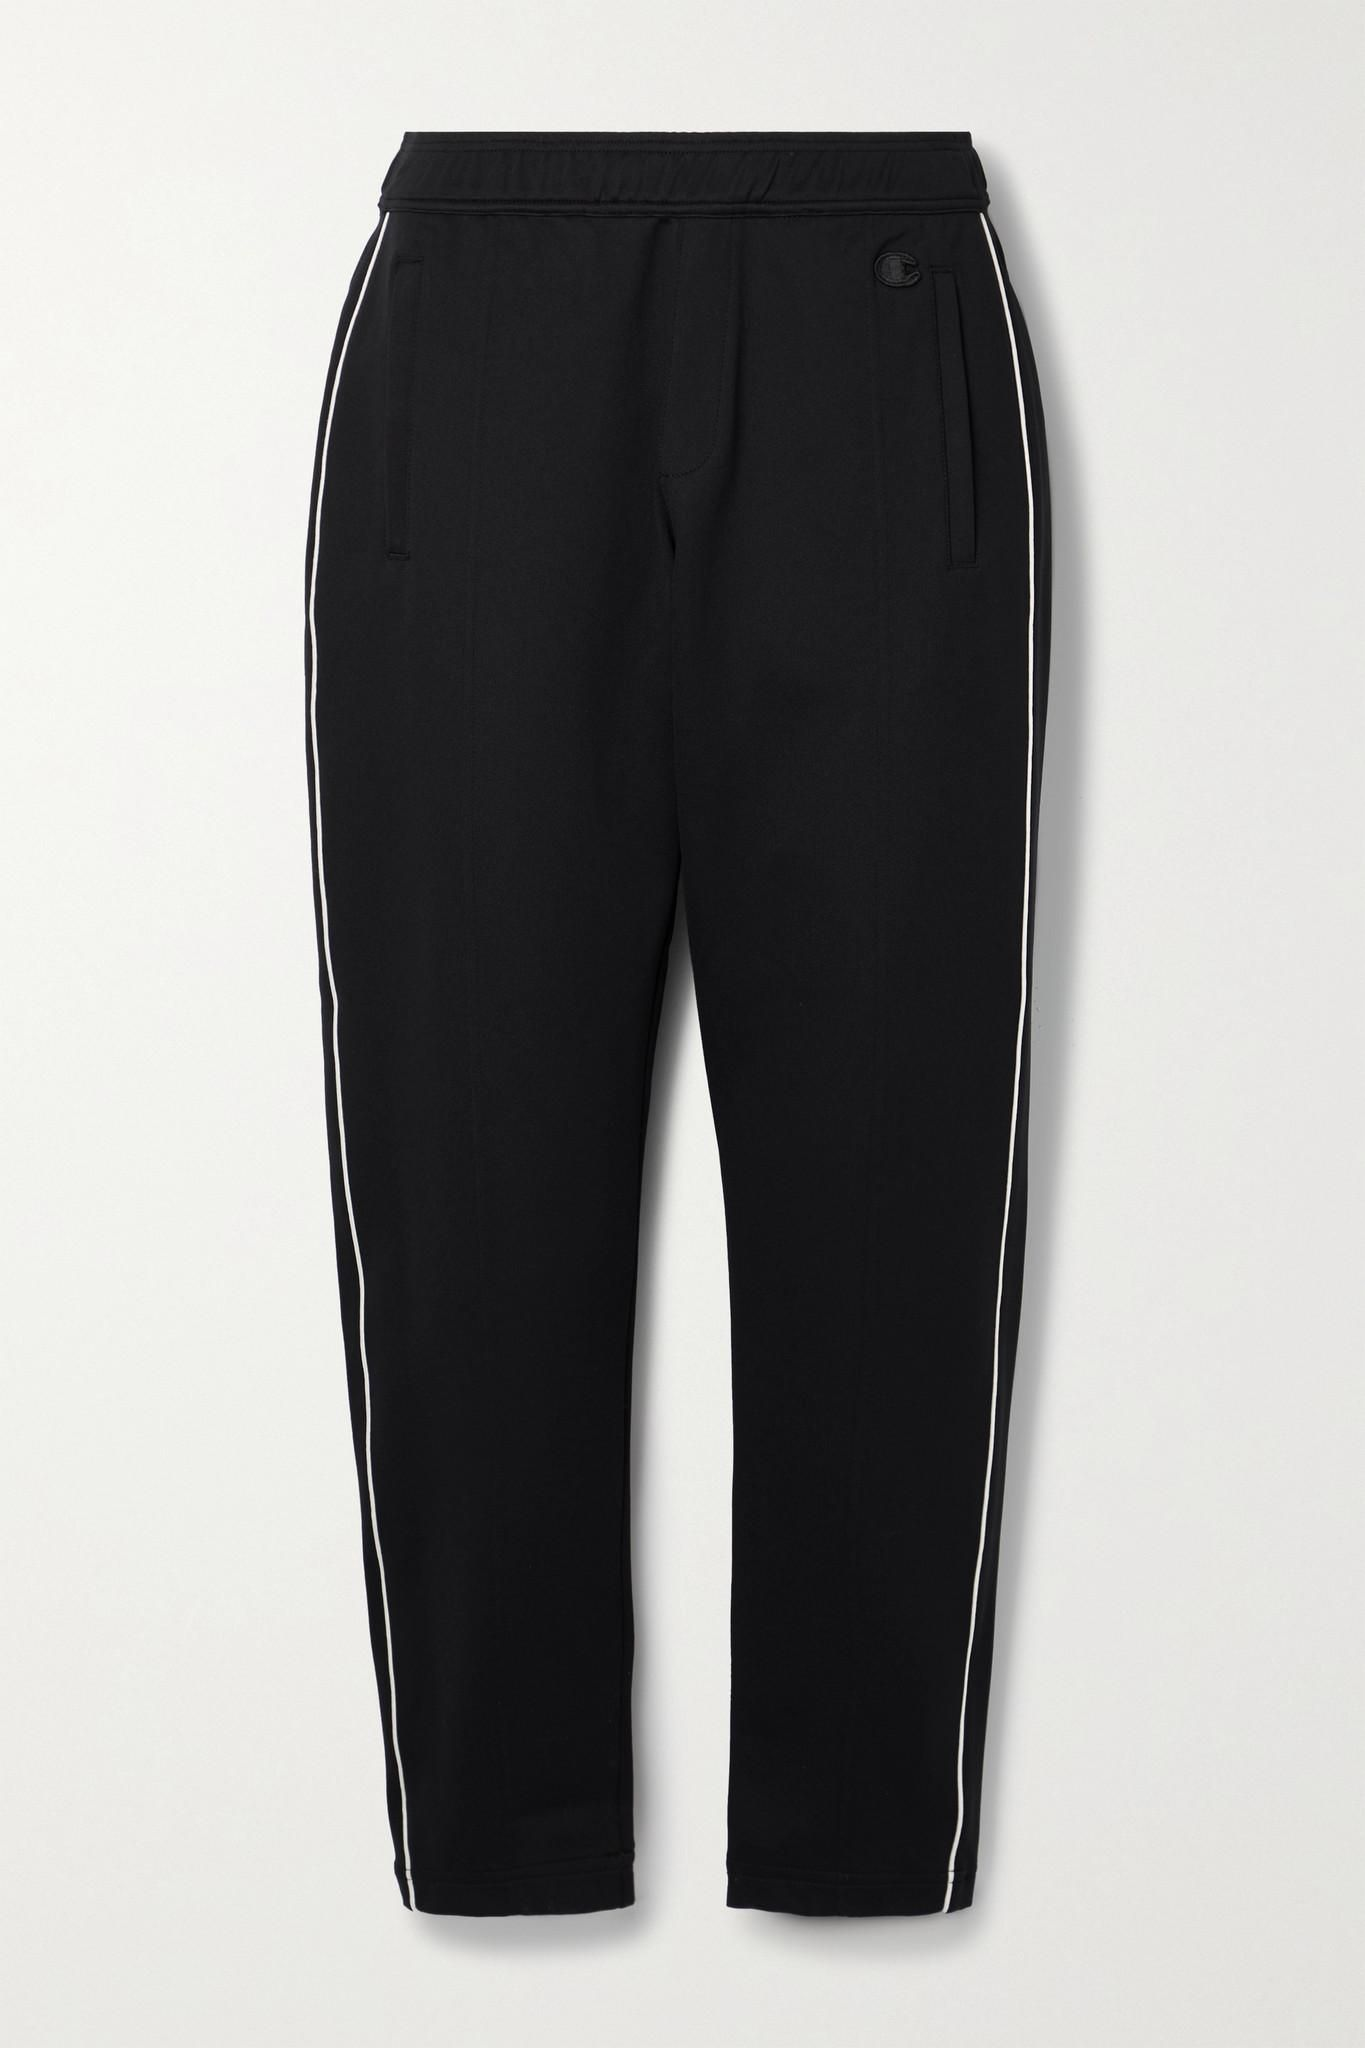 + Champion Appliqued Stretch Jersey Track Pants